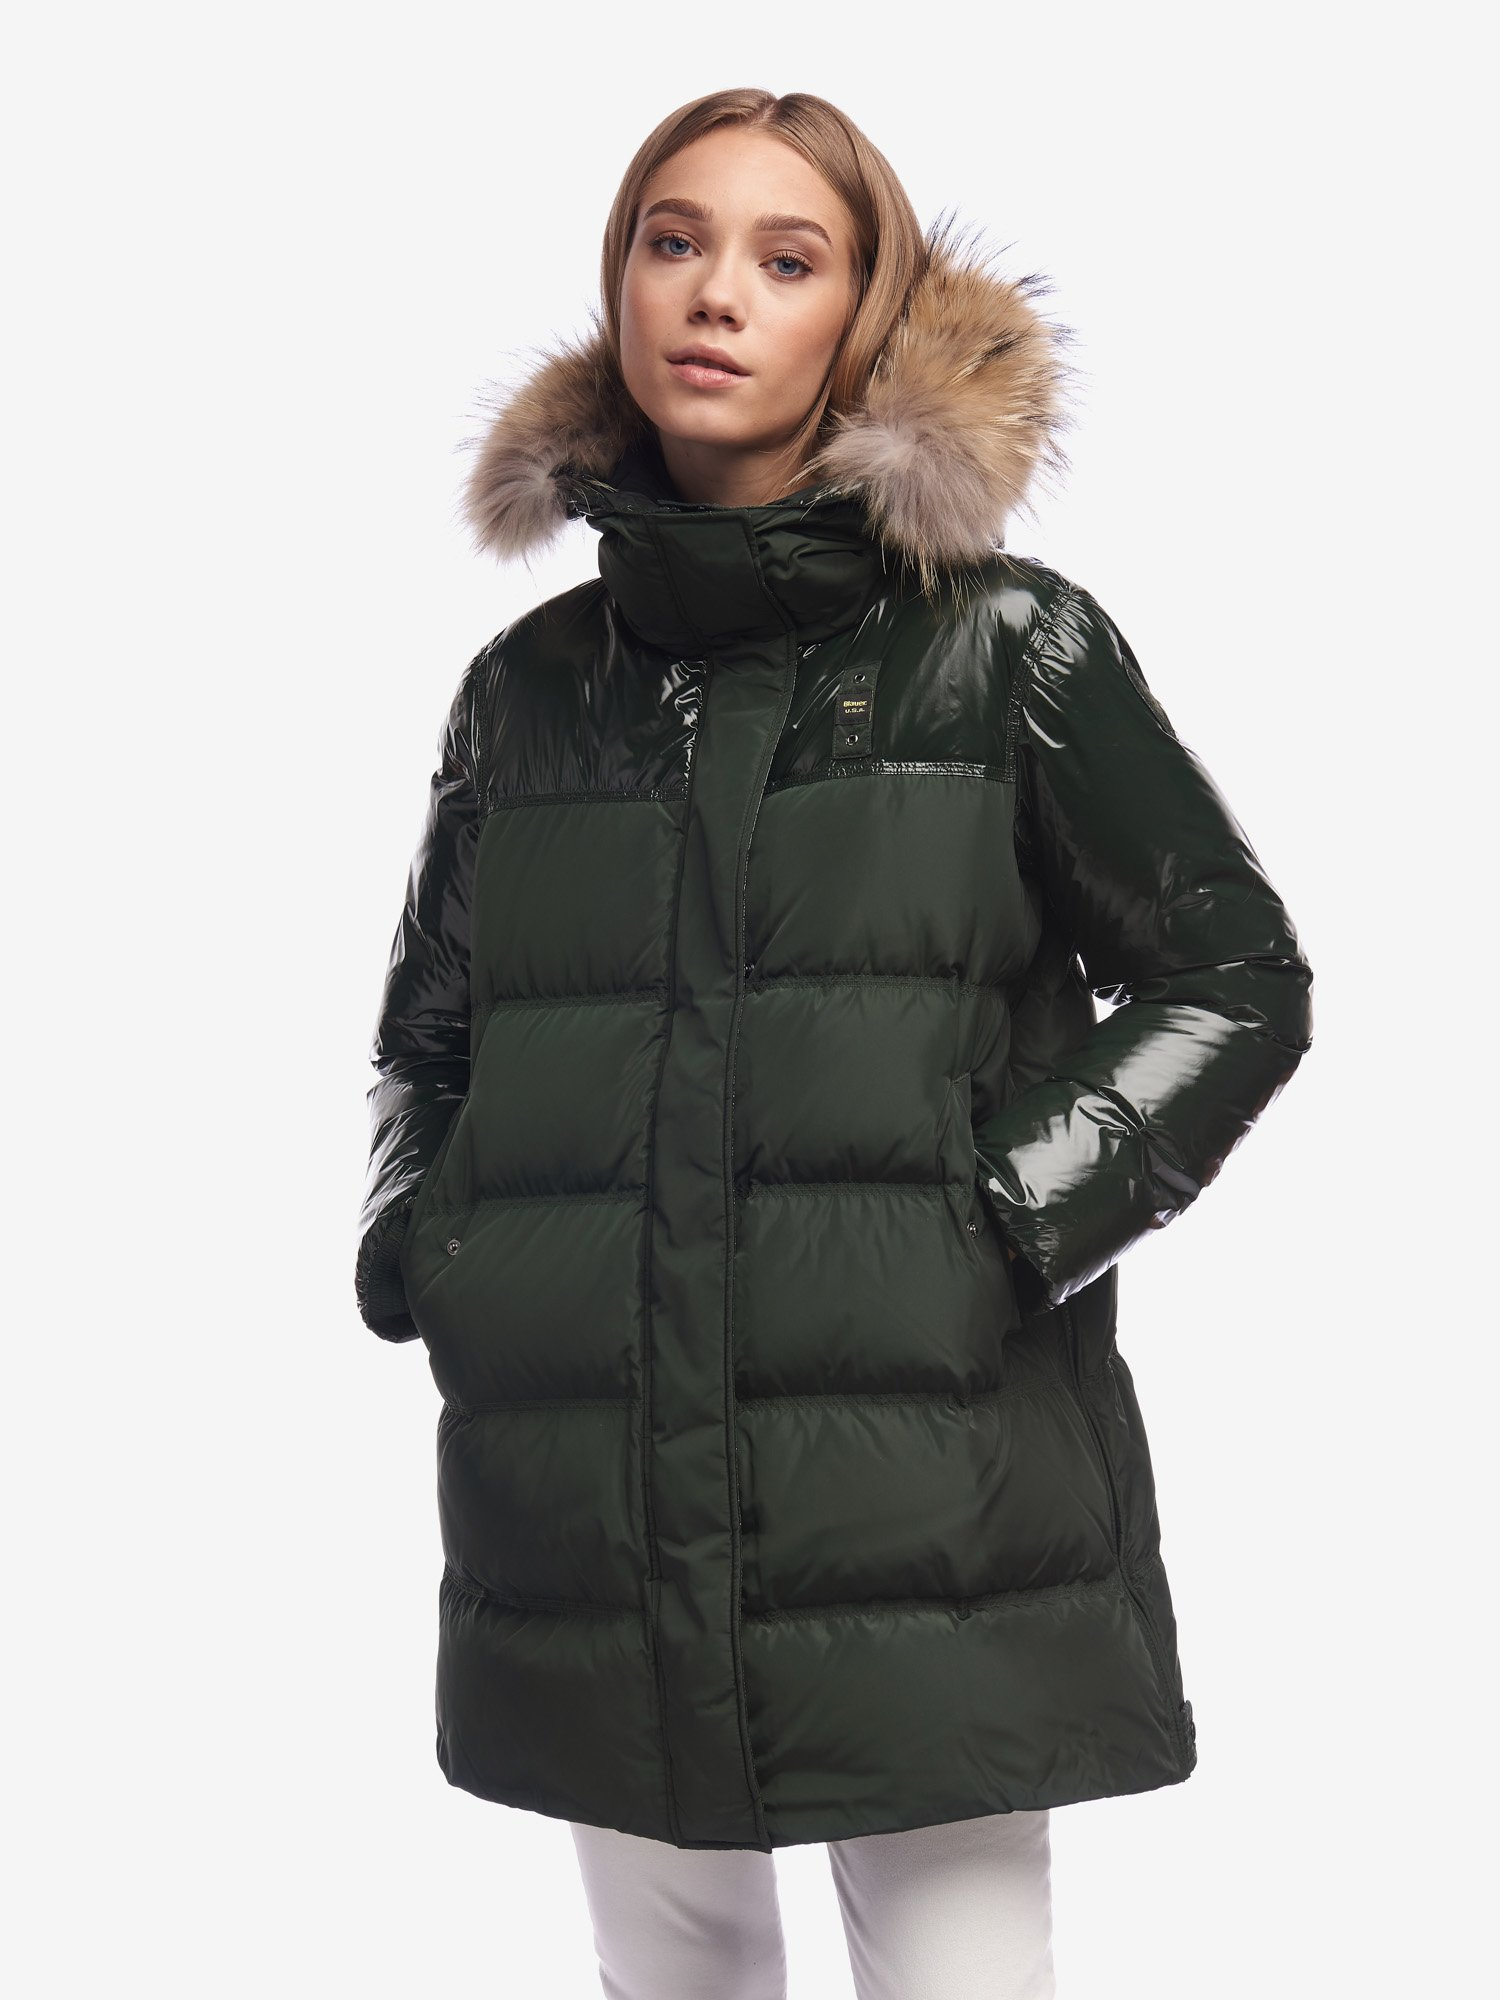 SHAW LONG NYLON DOWN JACKET - Blauer